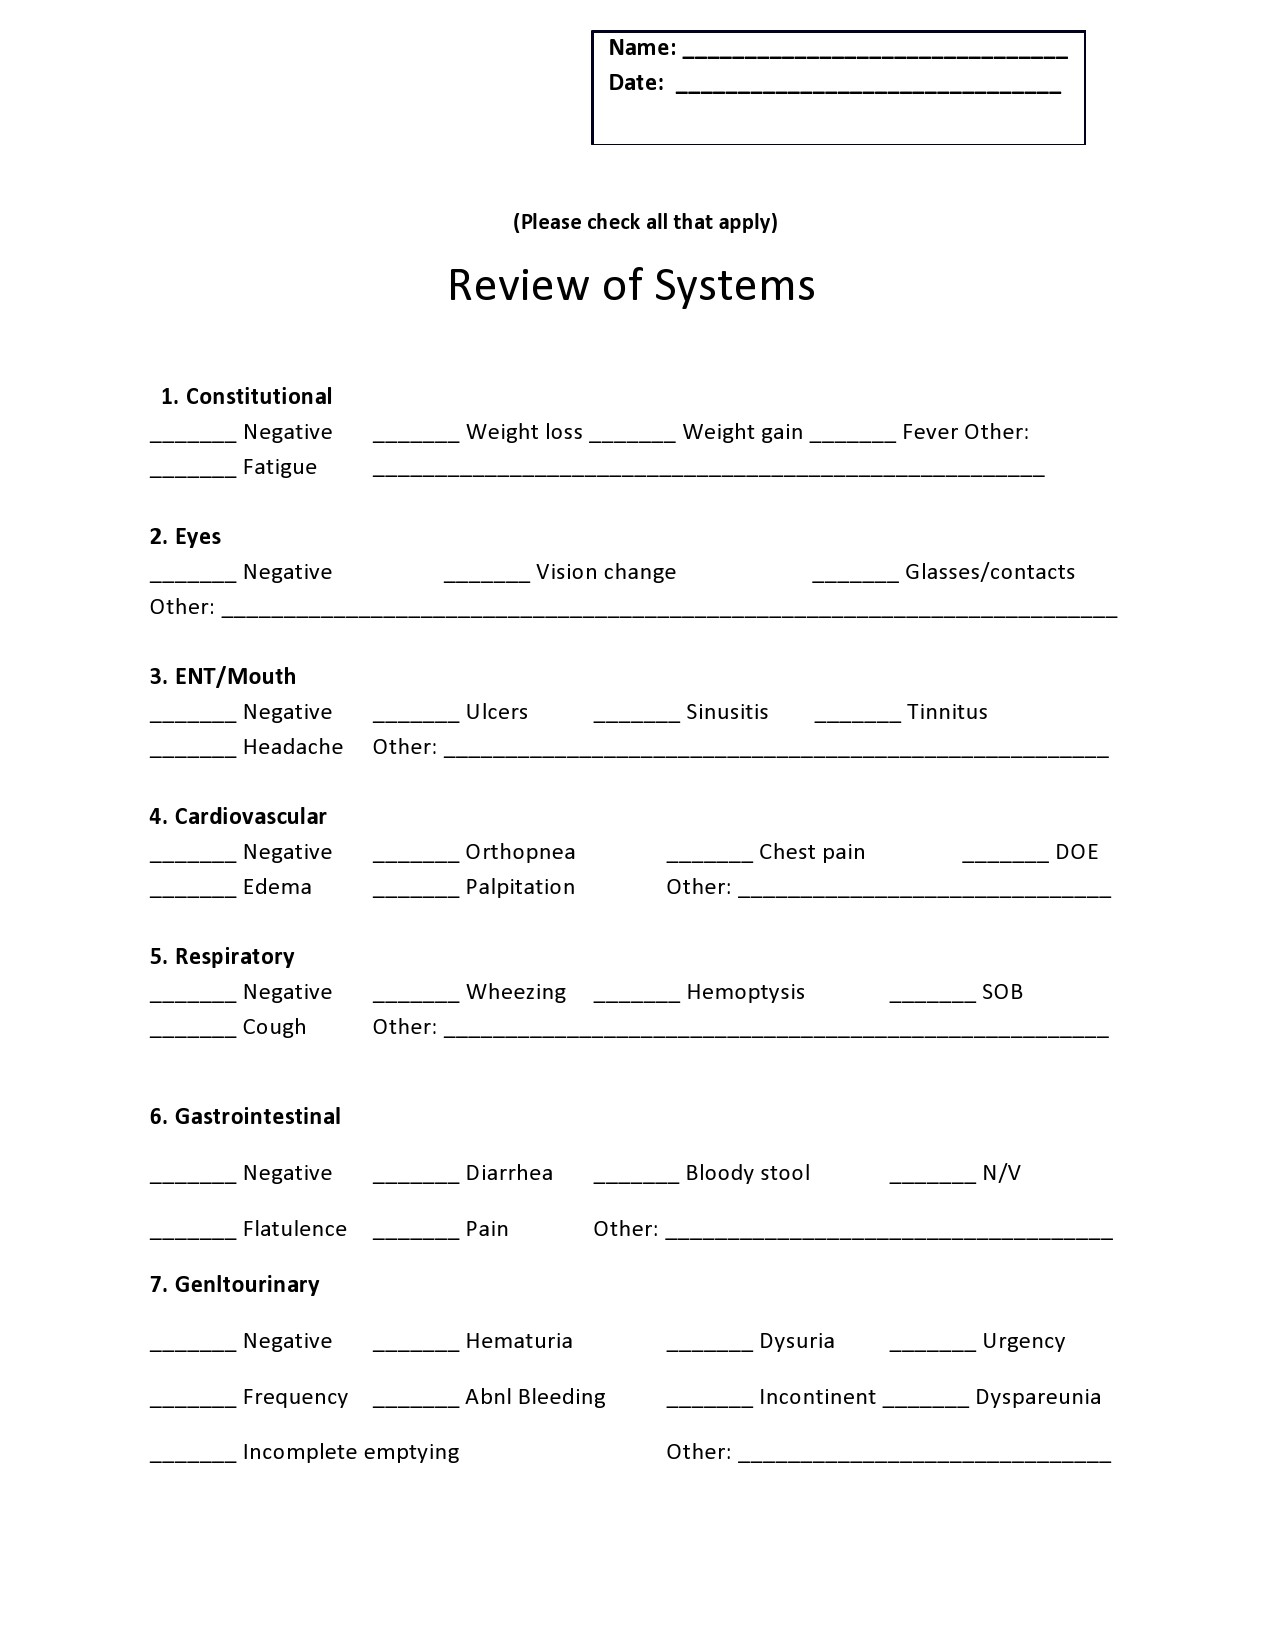 Free review of systems template 32